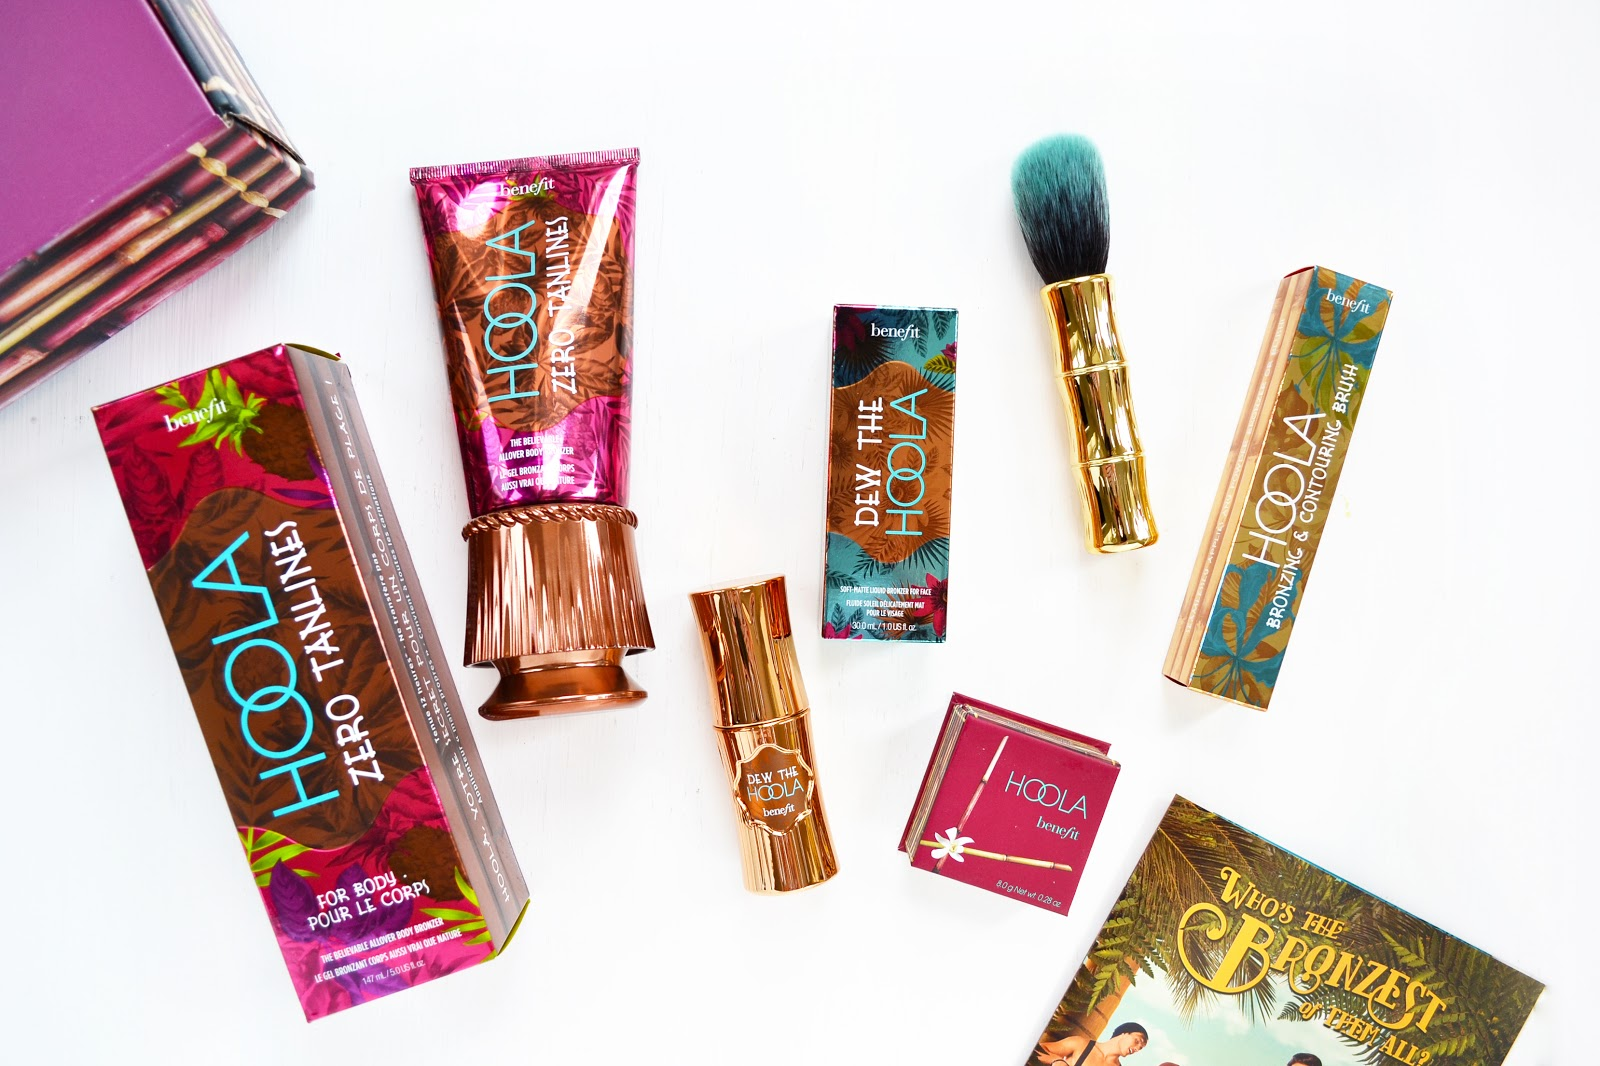 Benefit Launches 3 New Hoola Products